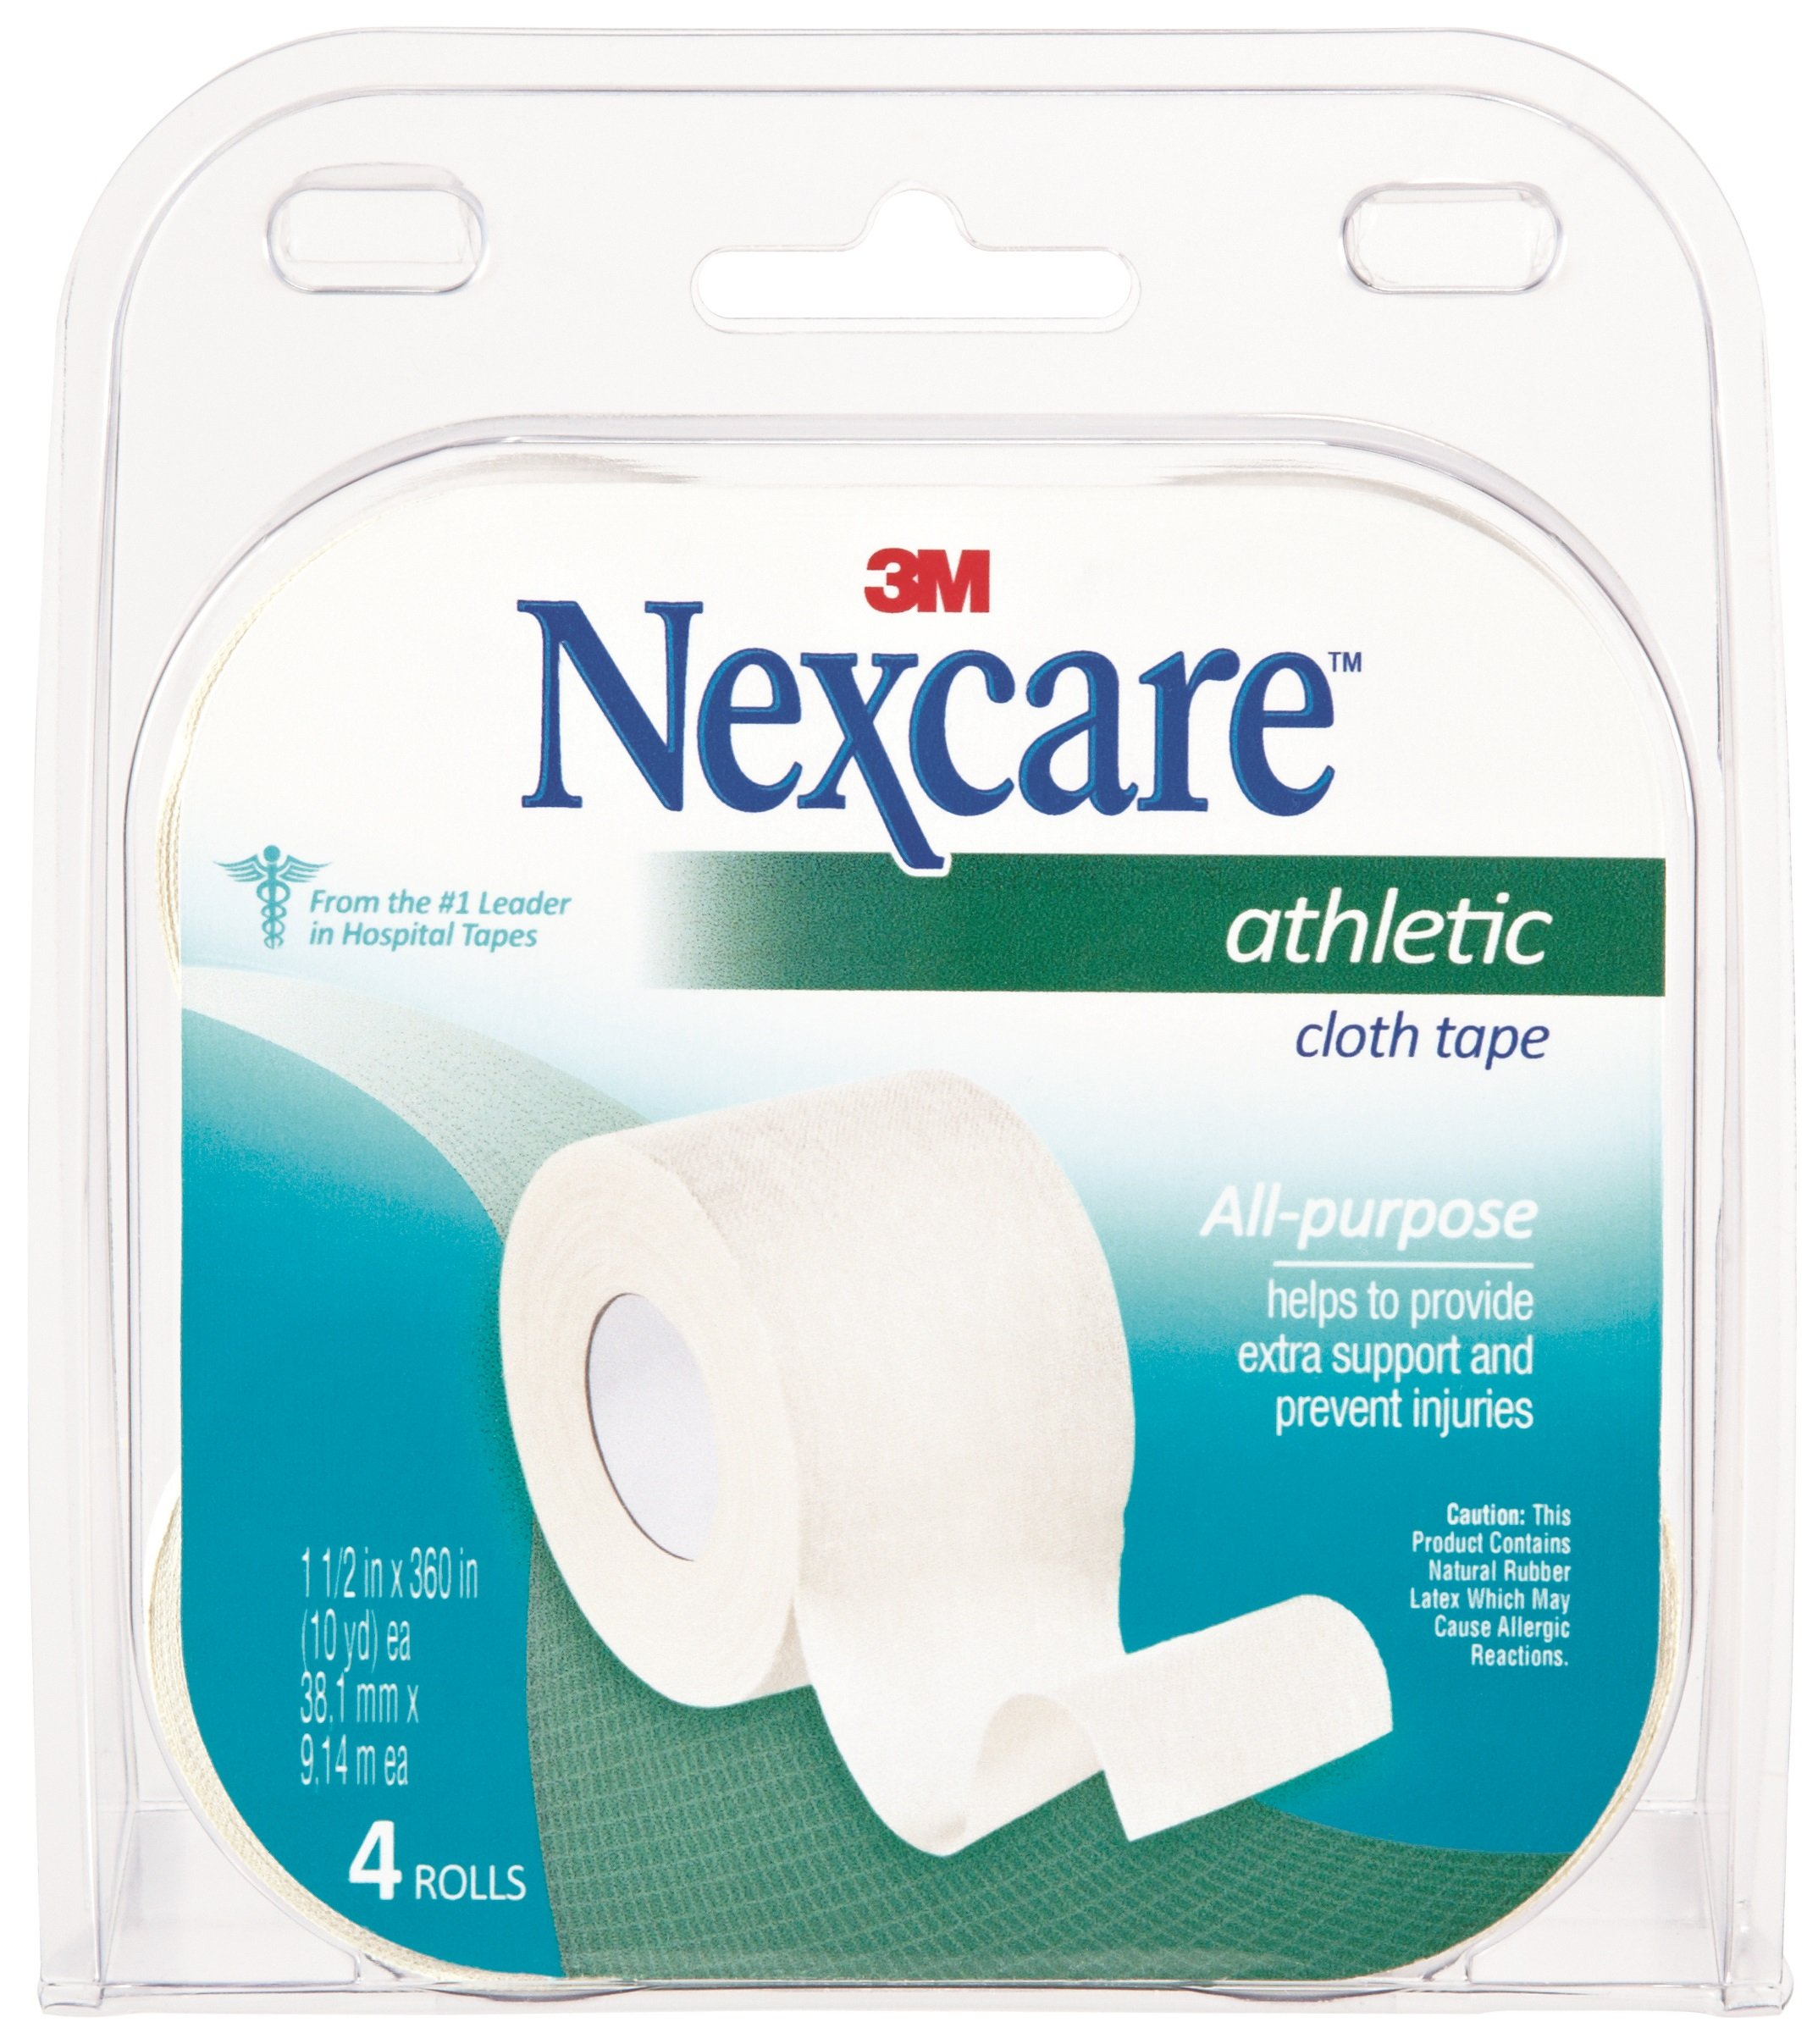 Nexcare Athletic Cloth Tape, Breathable, Water-Resistant, Useful for Sports and Exercise, Sprains, Strains, and Splints, 1-1/2-Inches X 10-Yards, 8 Rolls (2 Packs of 4 Each)